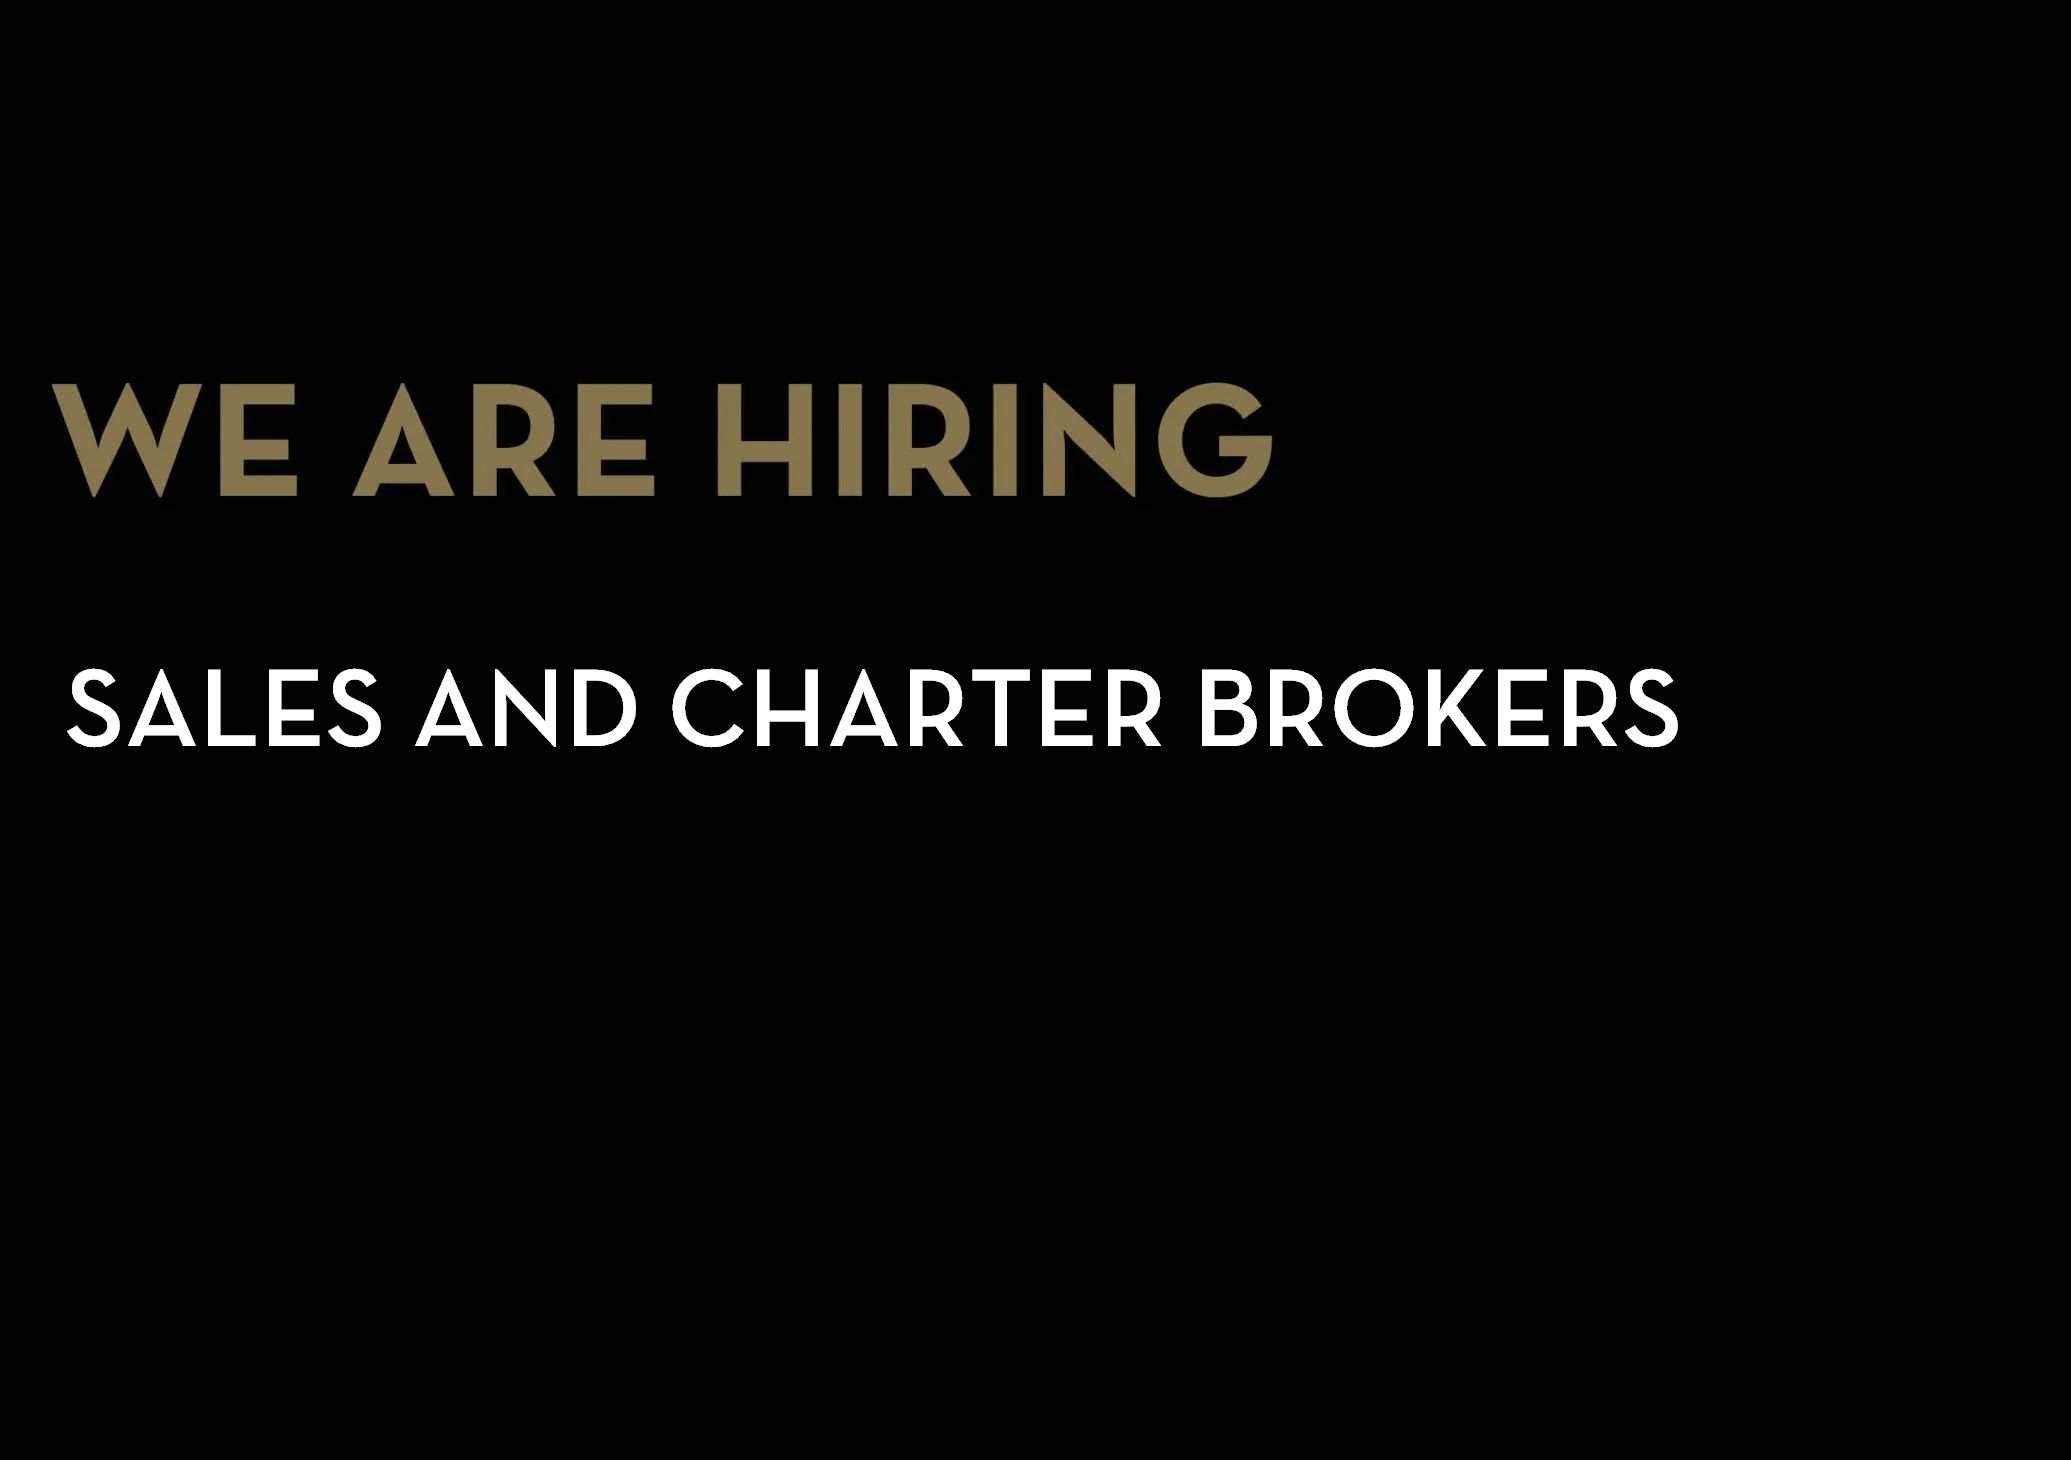 YACHTZOO is Hiring: Sales and Charter Brokers